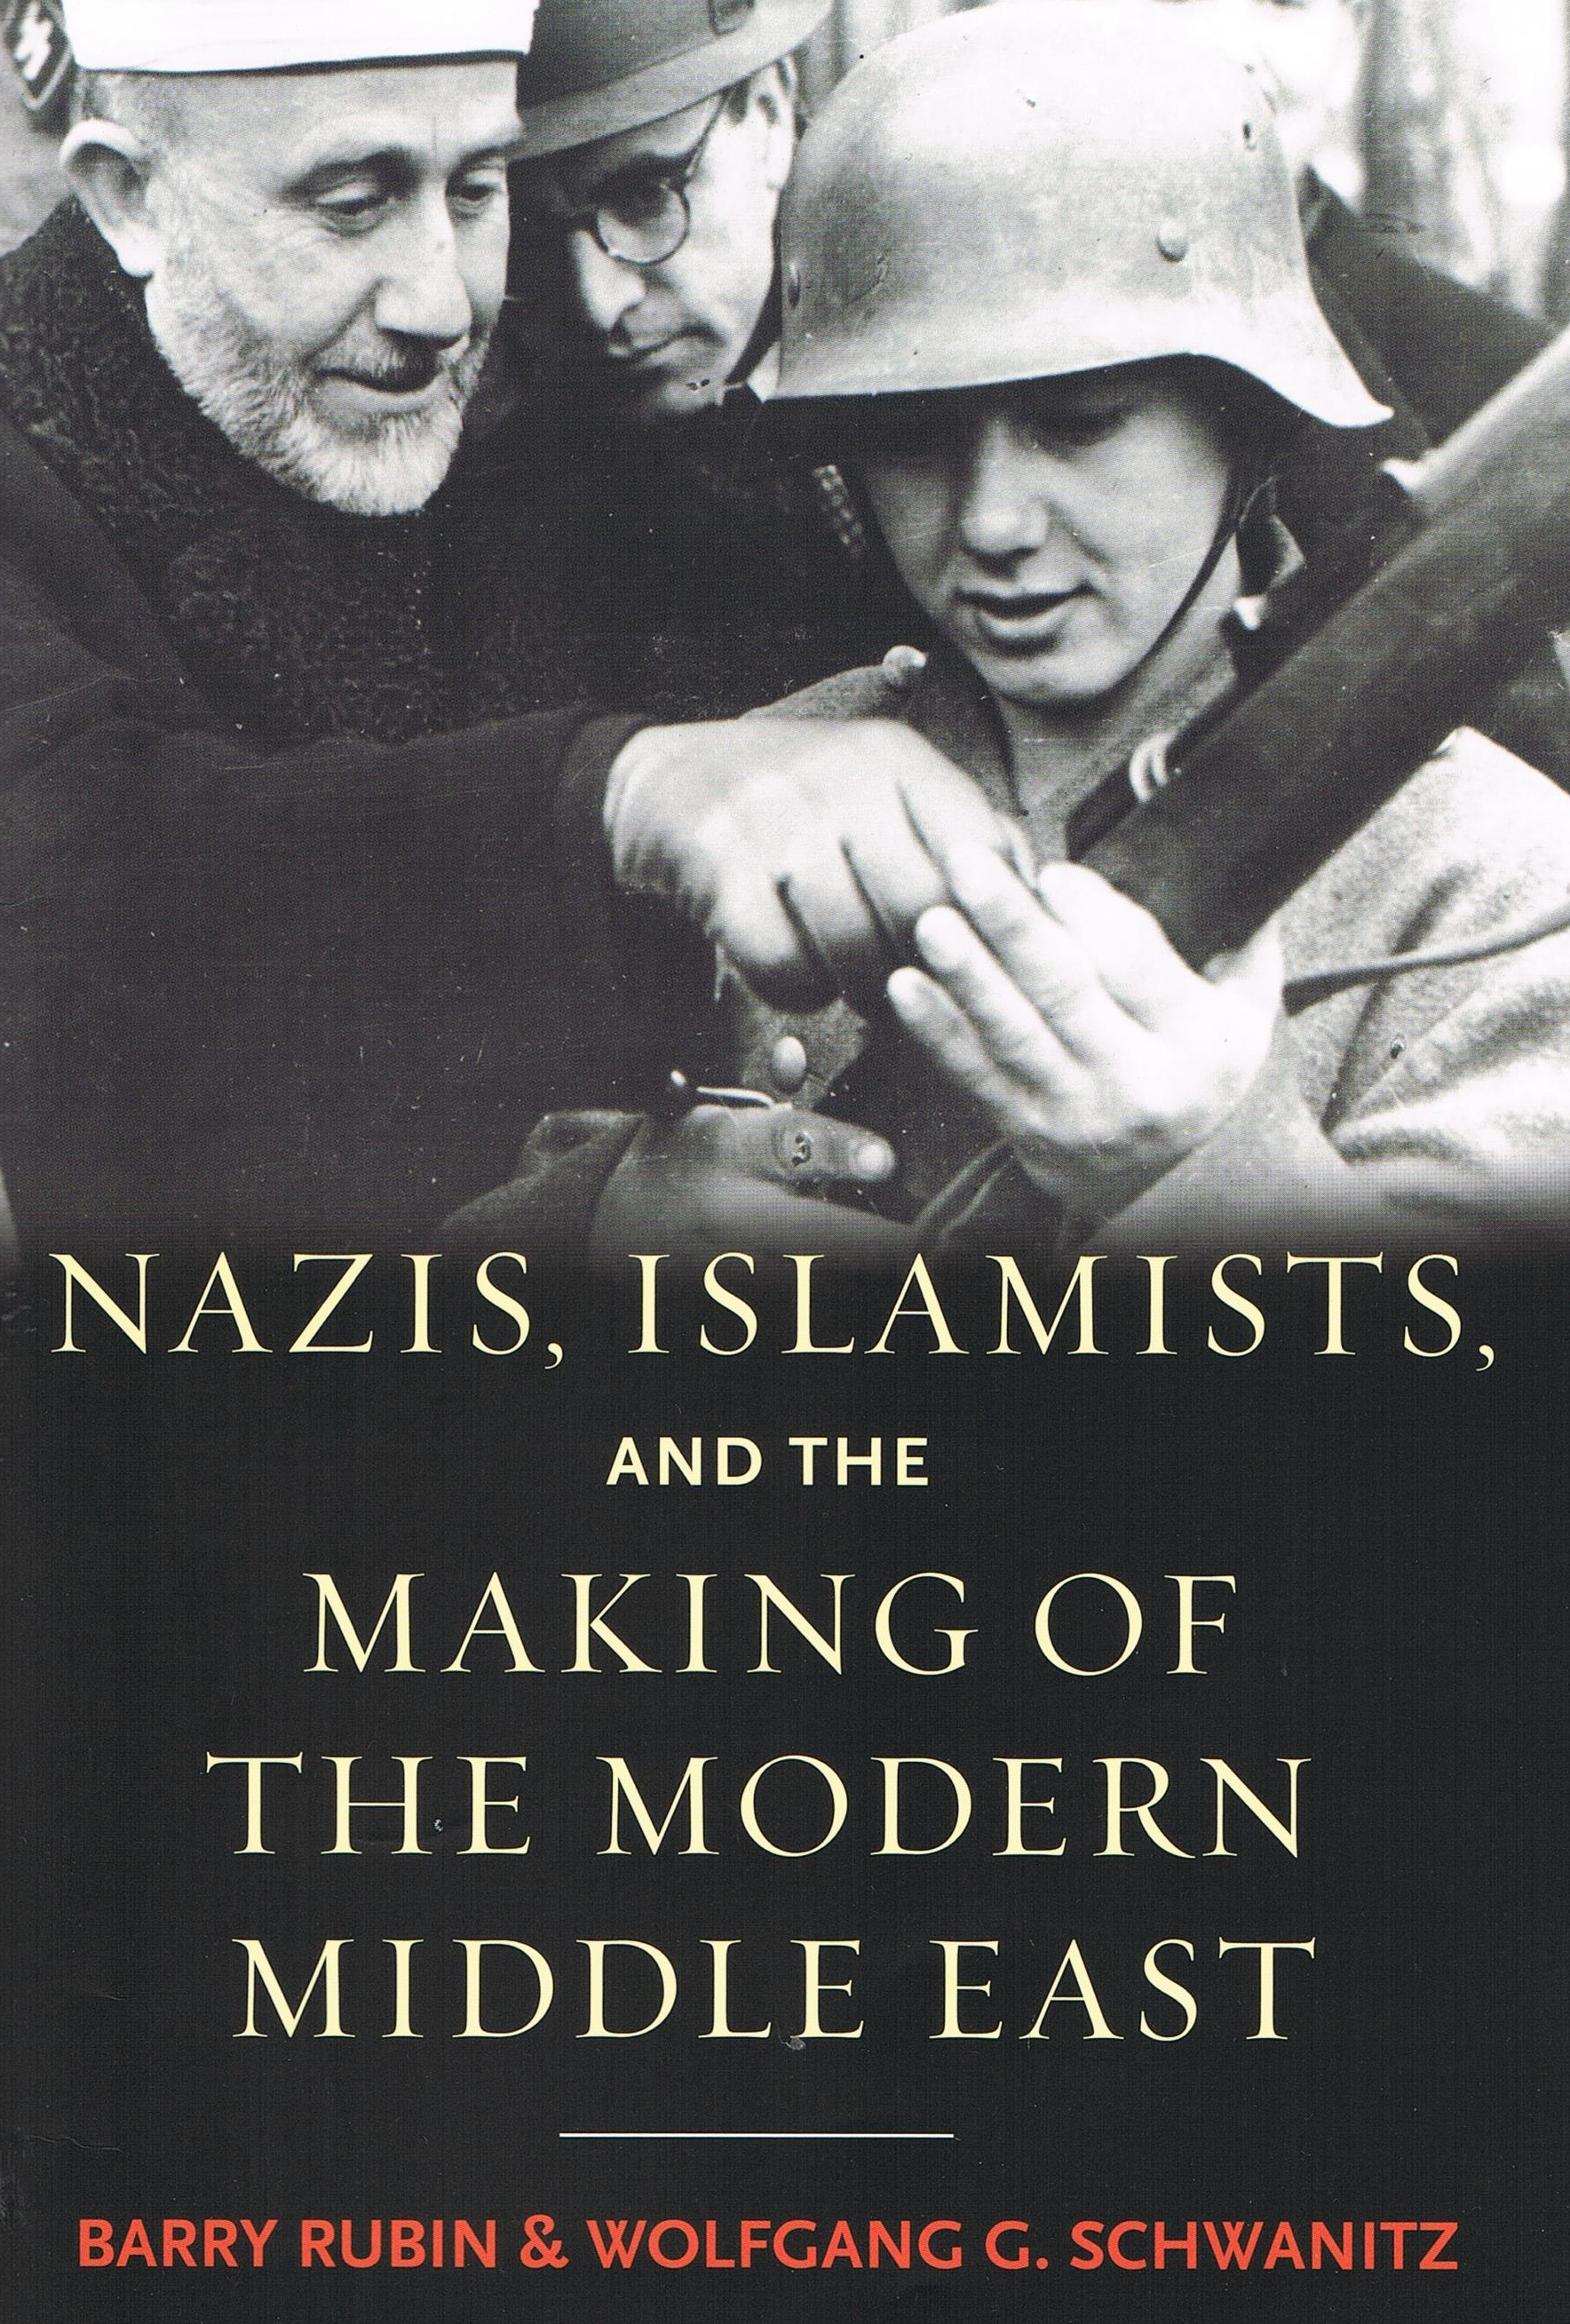 http://upload.wikimedia.org/wikipedia/commons/2/20/Cover_Nazis_Islamist.jpg